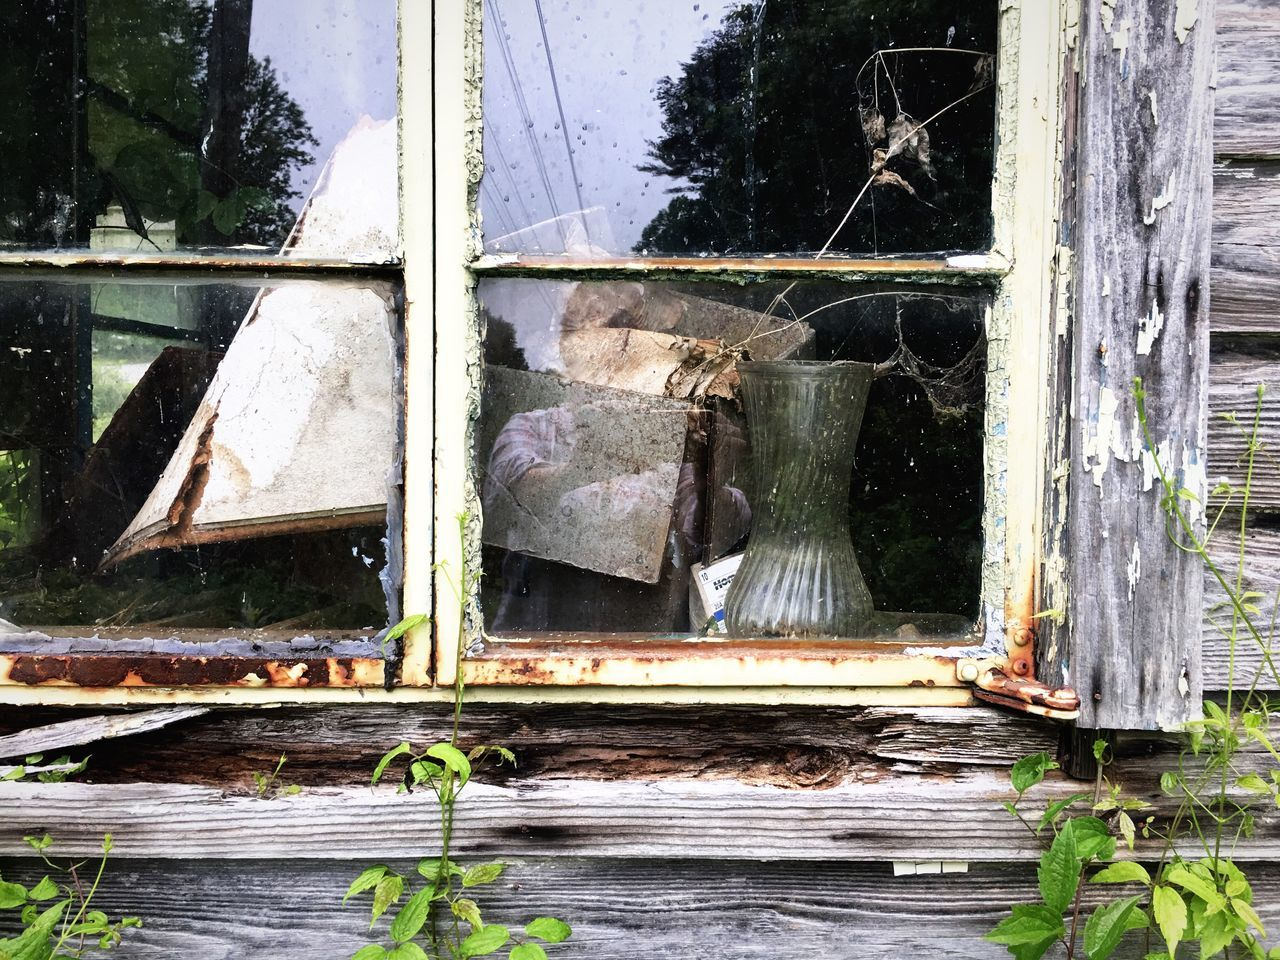 Window Destruction Architecture Close-up Outdoors Day Exterior Reflection Abandoned Countryside Abandoned & Derelict Appalachian Mountains